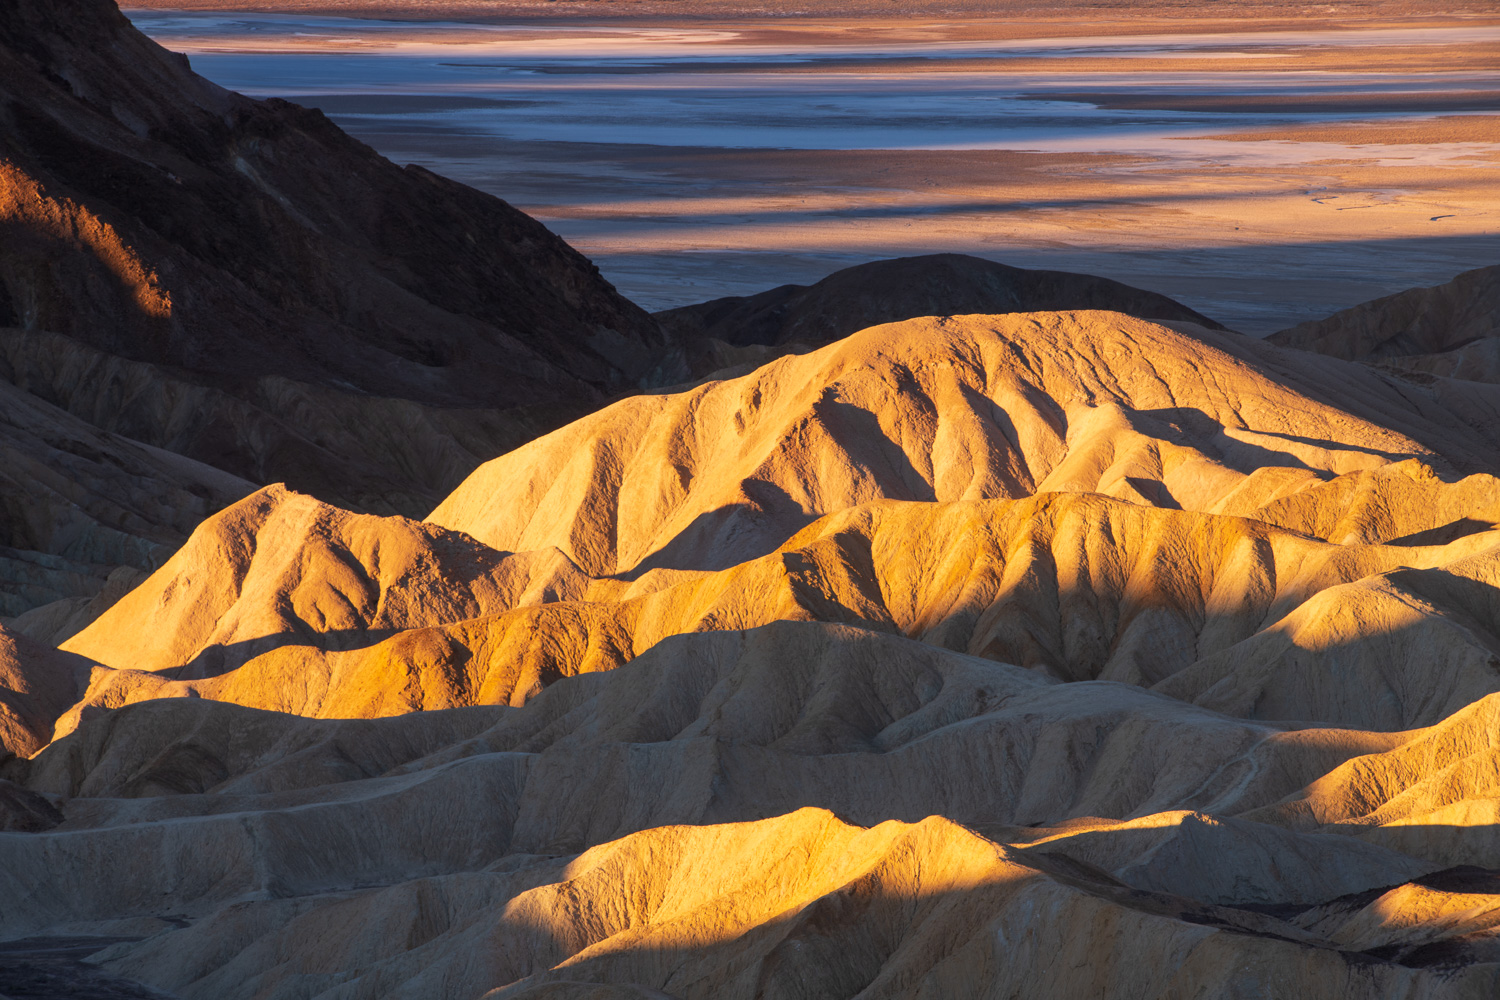 First light on the badlands from Zambriske Point, Death Valley National Park, California.